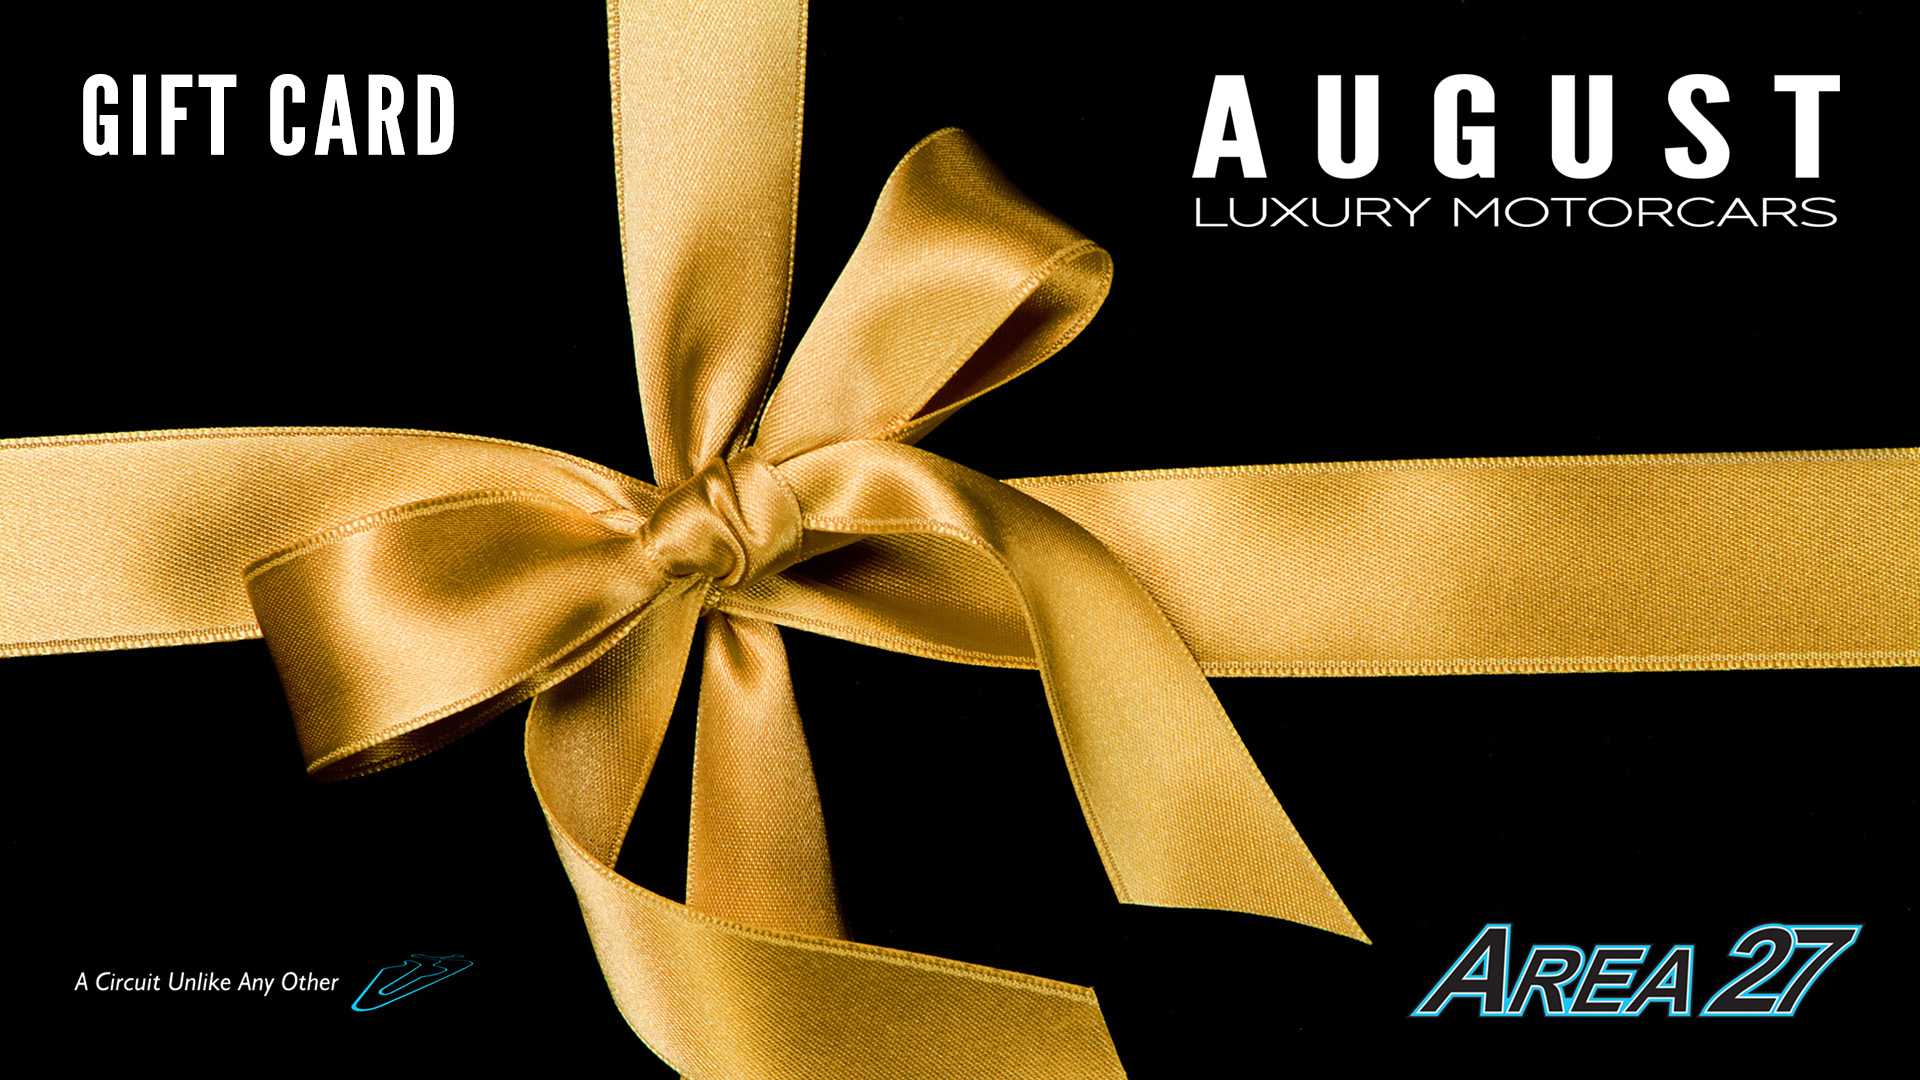 August Group Client Appreciation Track Day Gift Card